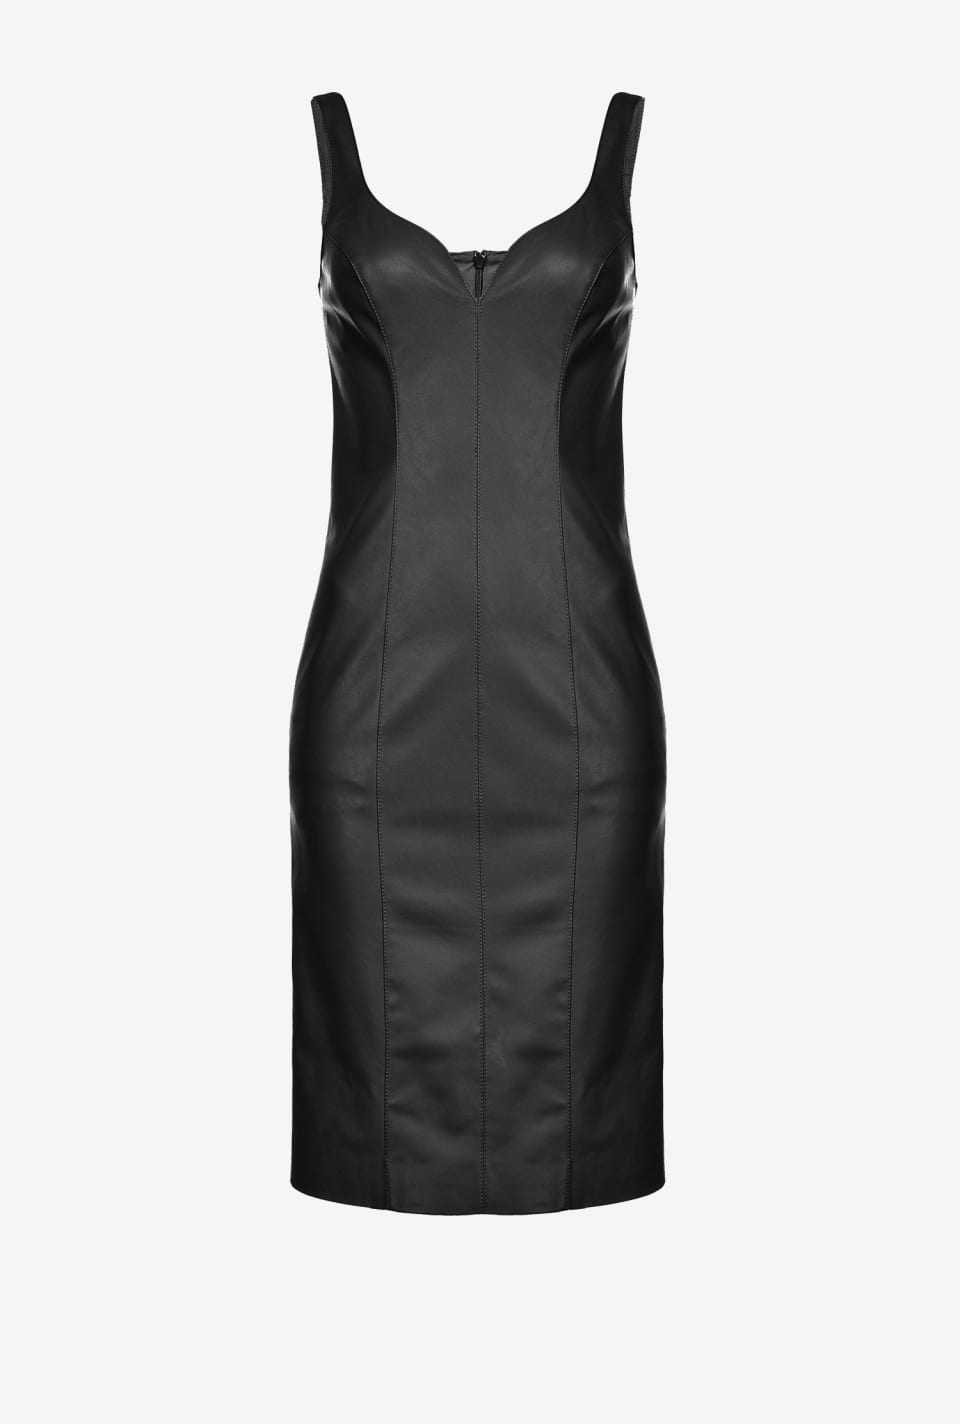 Leather-look sheath dress - Pinko